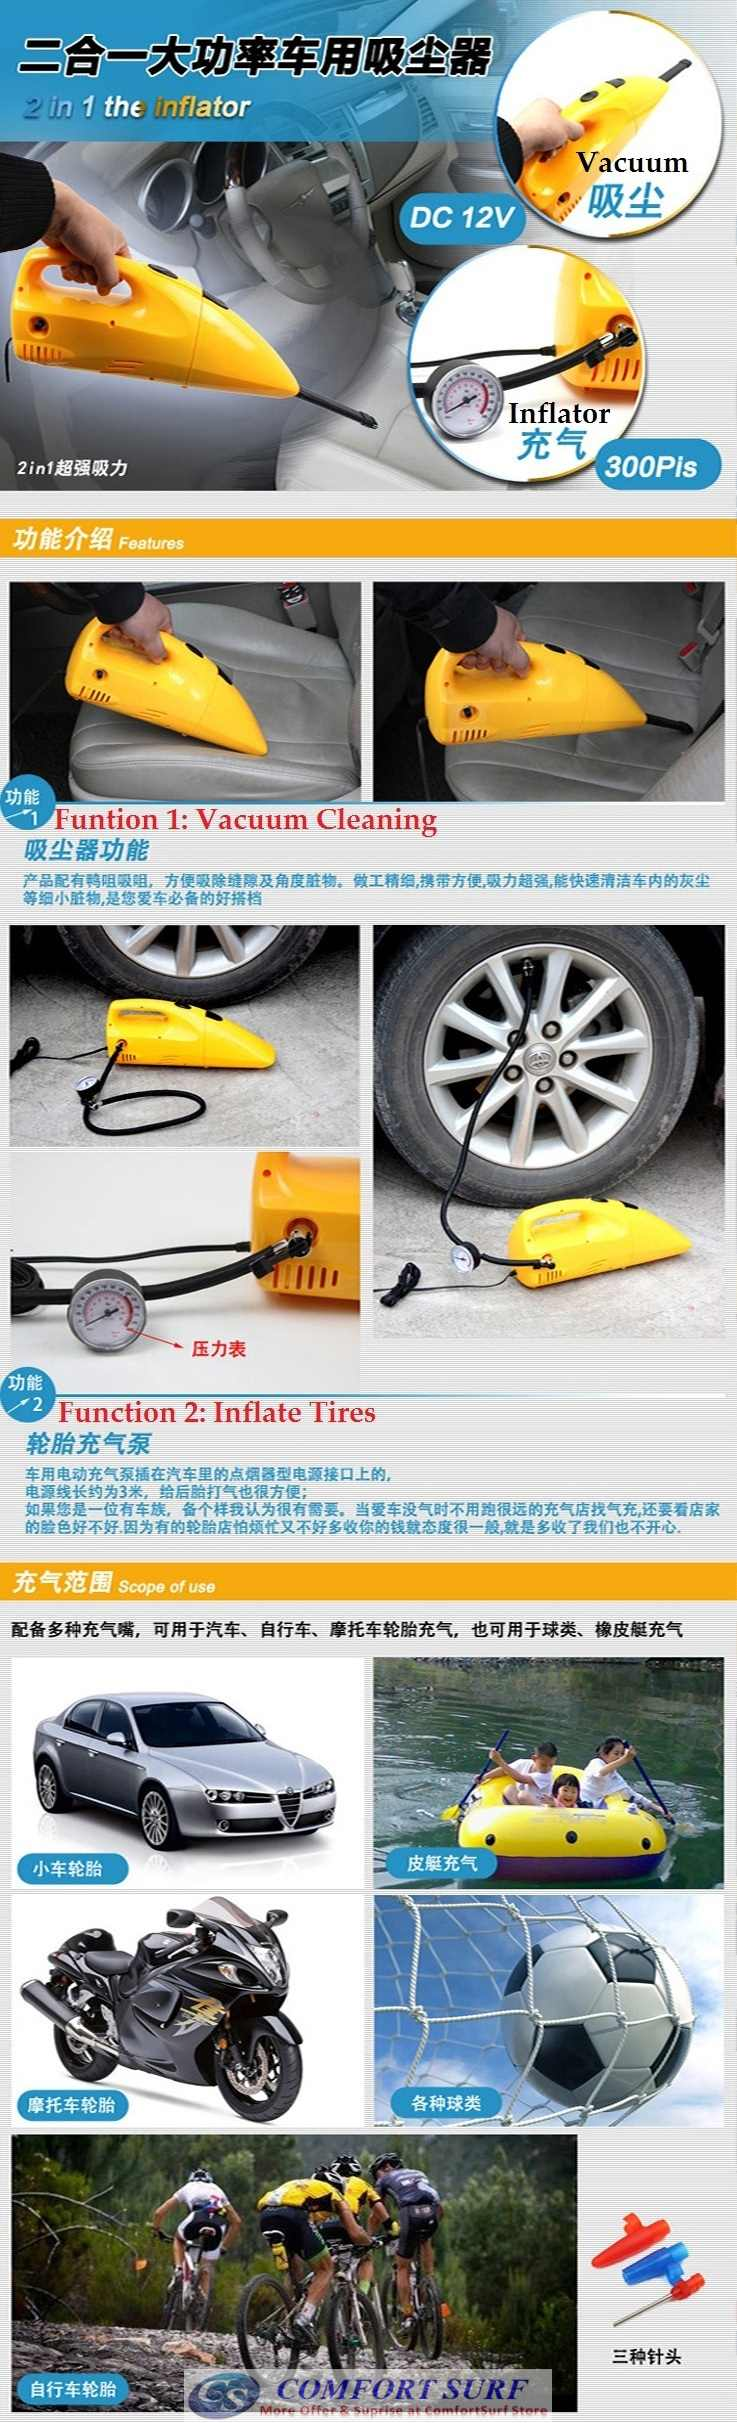 2 in 1 Car Dual Function Tire Inflator with Vacuum Cleaner